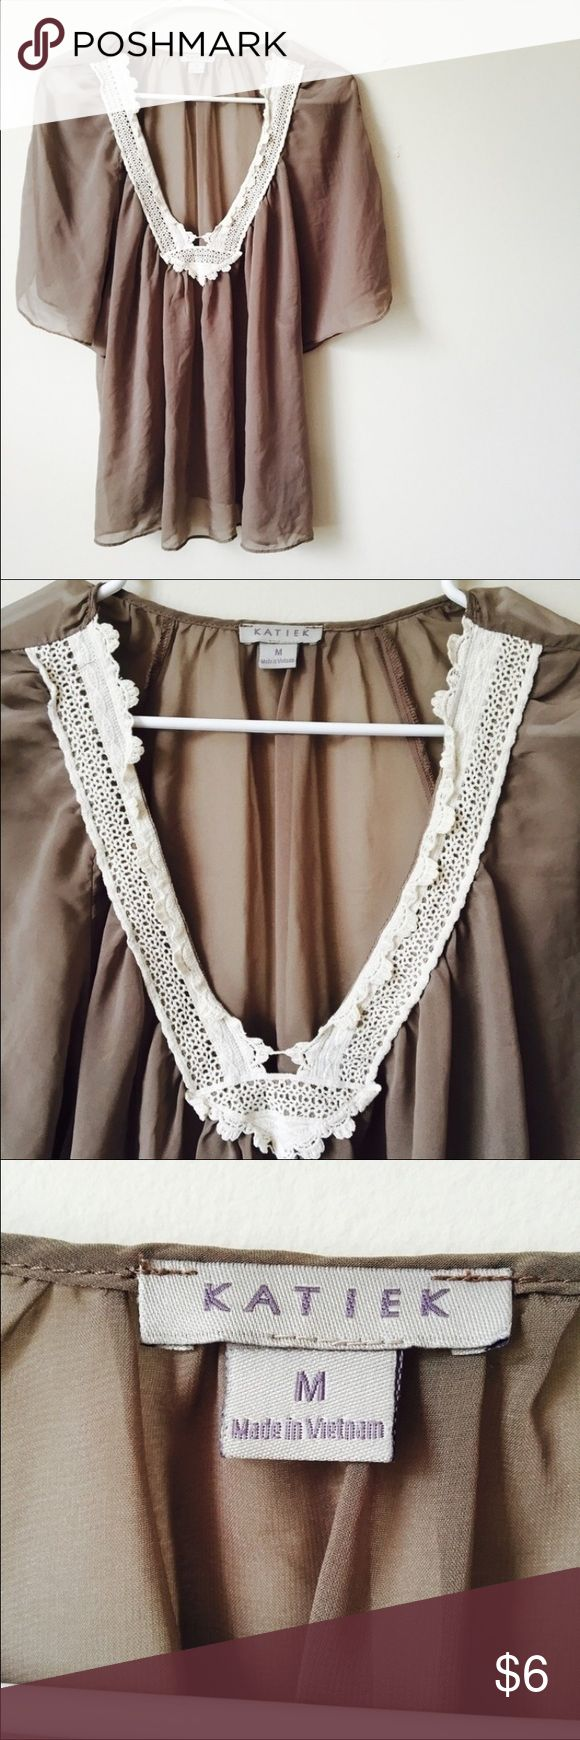 🌺Cute see through  blouse!🌺 This is a super cute brown see through blouse! Size medium! There are no flaws! Please ask if you have any questions! Excepting all offers!🌺 Katiek Tops Blouses